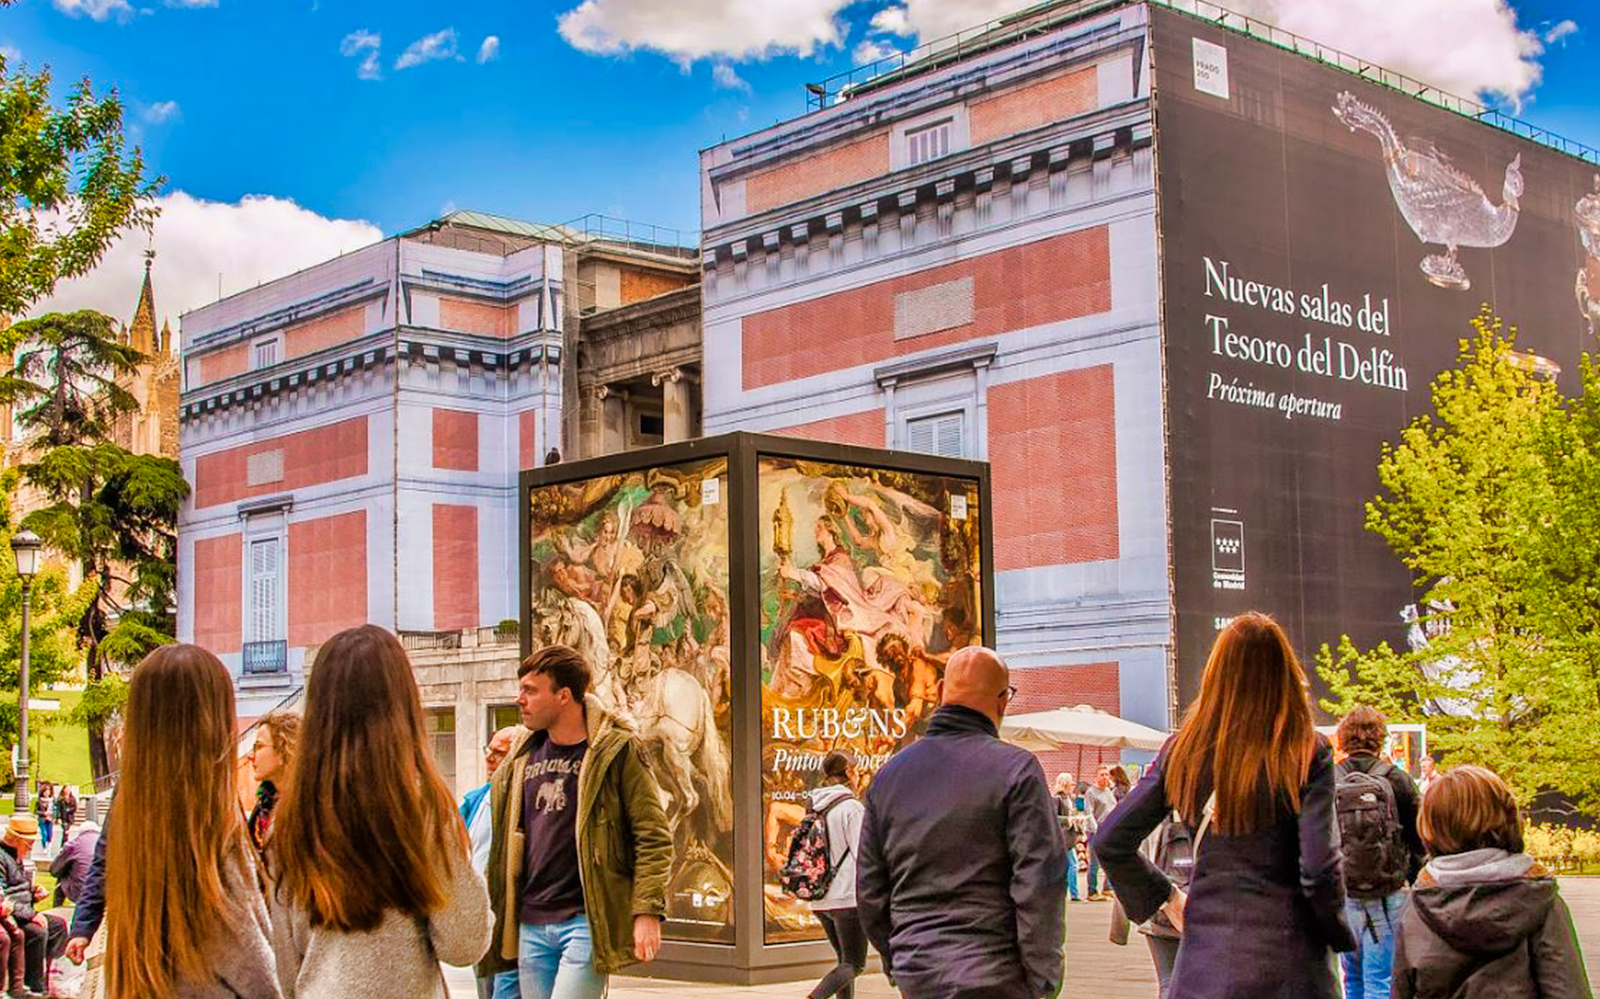 392511c7 86e3 49f9 86d5 57119ce8fb4c 10409 madrid prado museum guided tour 06